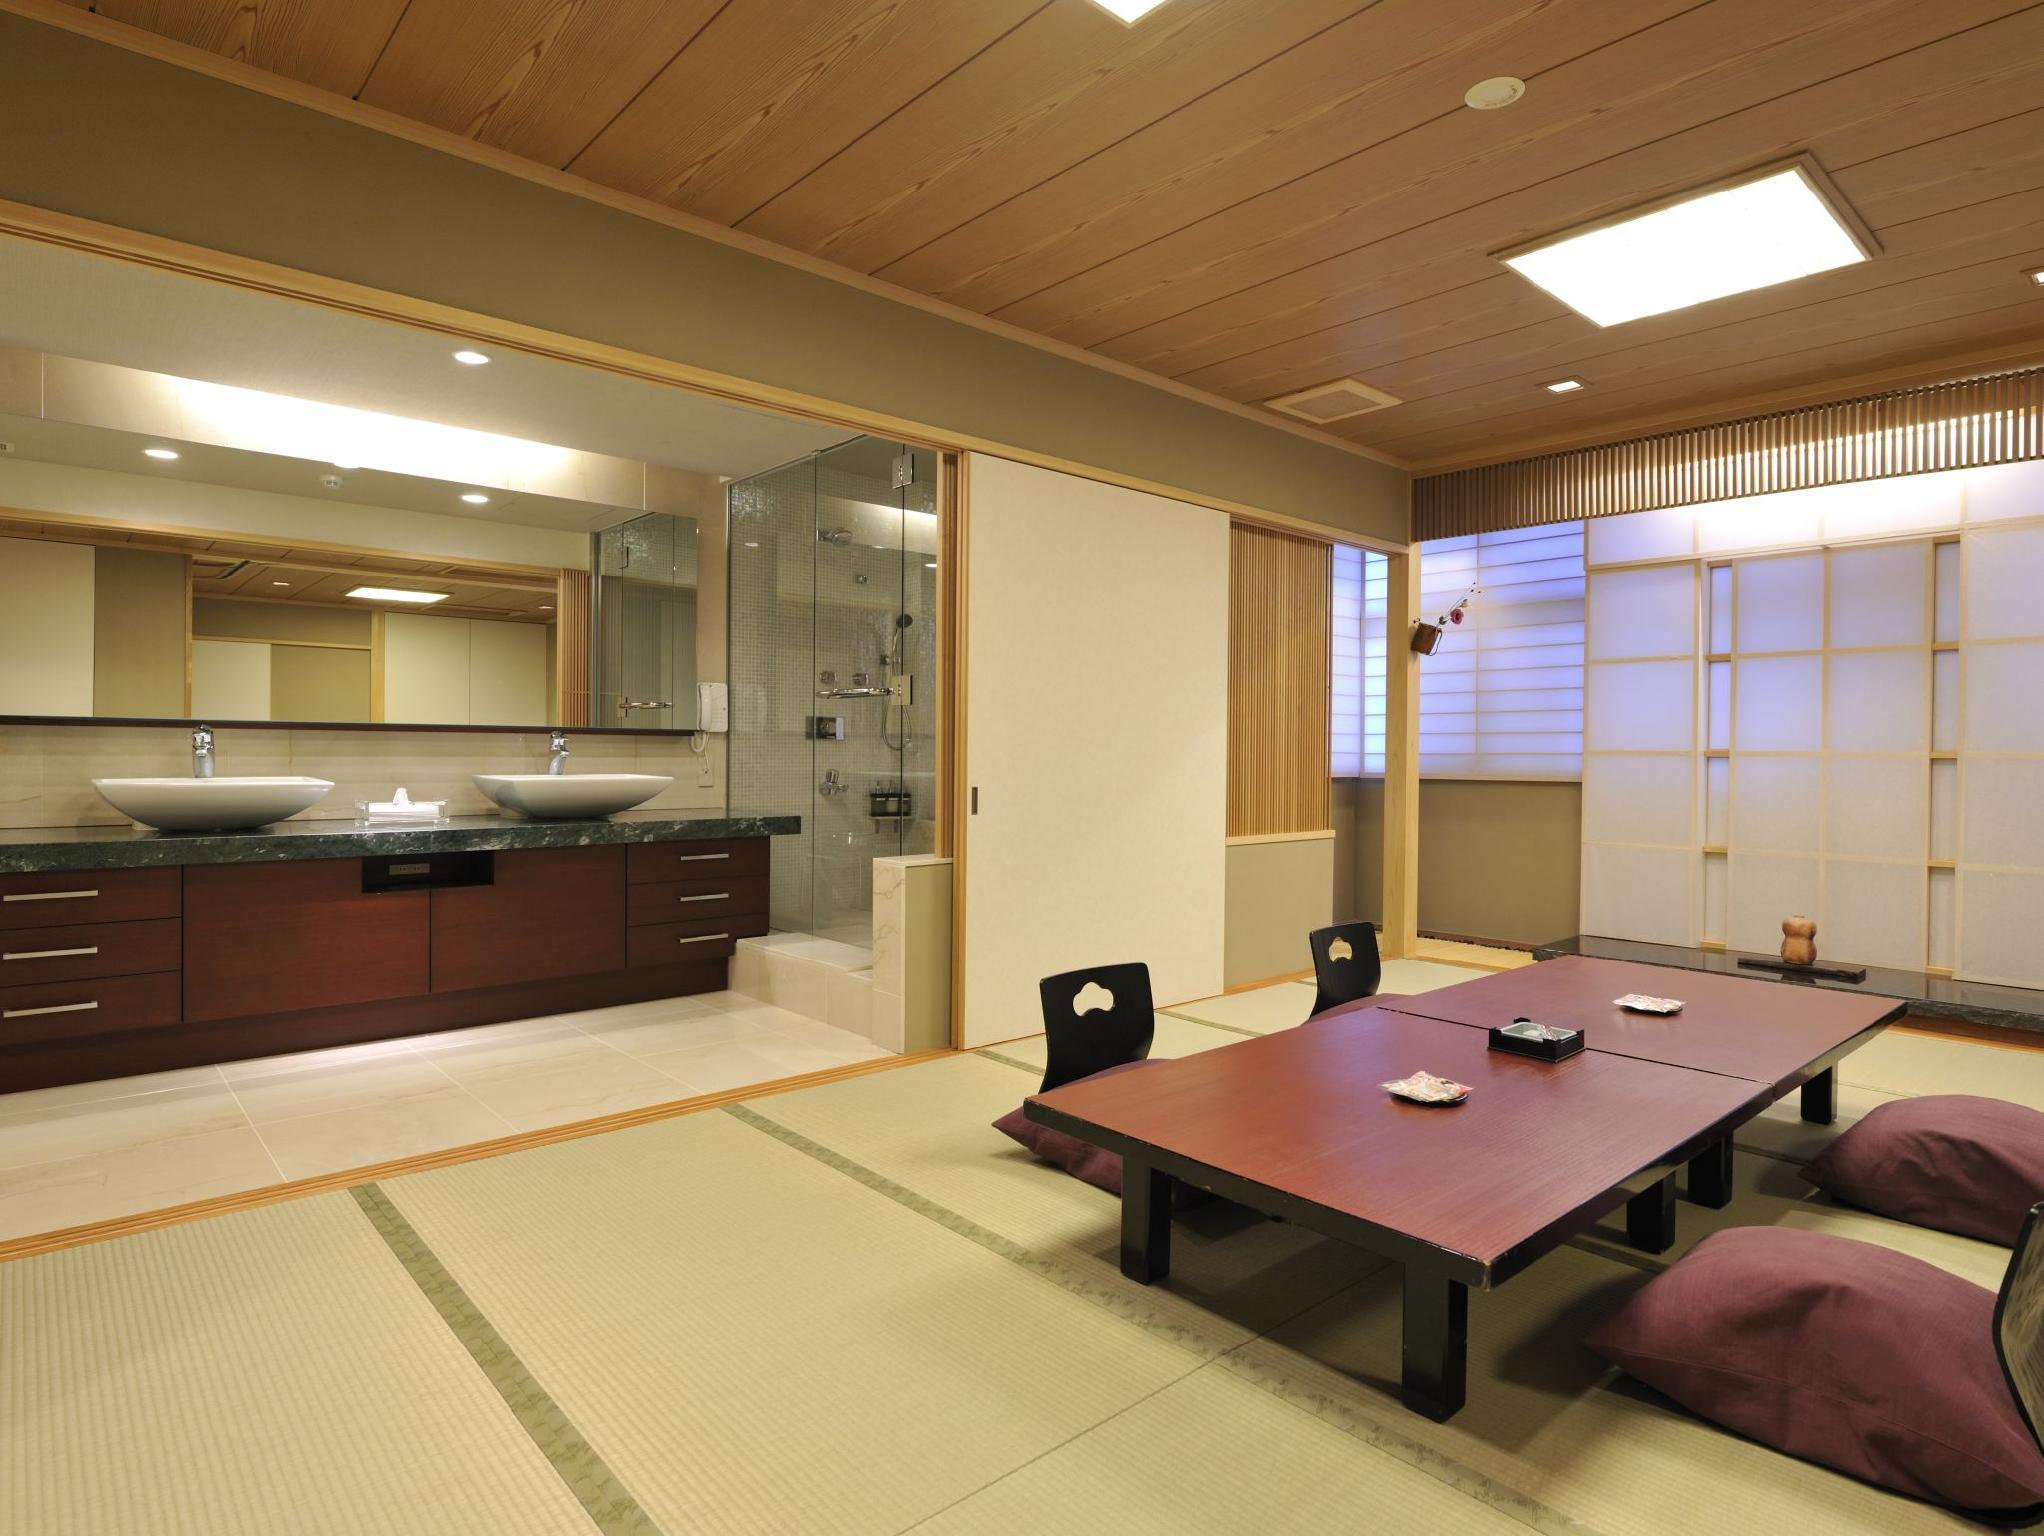 Luxury Modern Japanese Style Family Room for 4 People with 2 Bathrooms